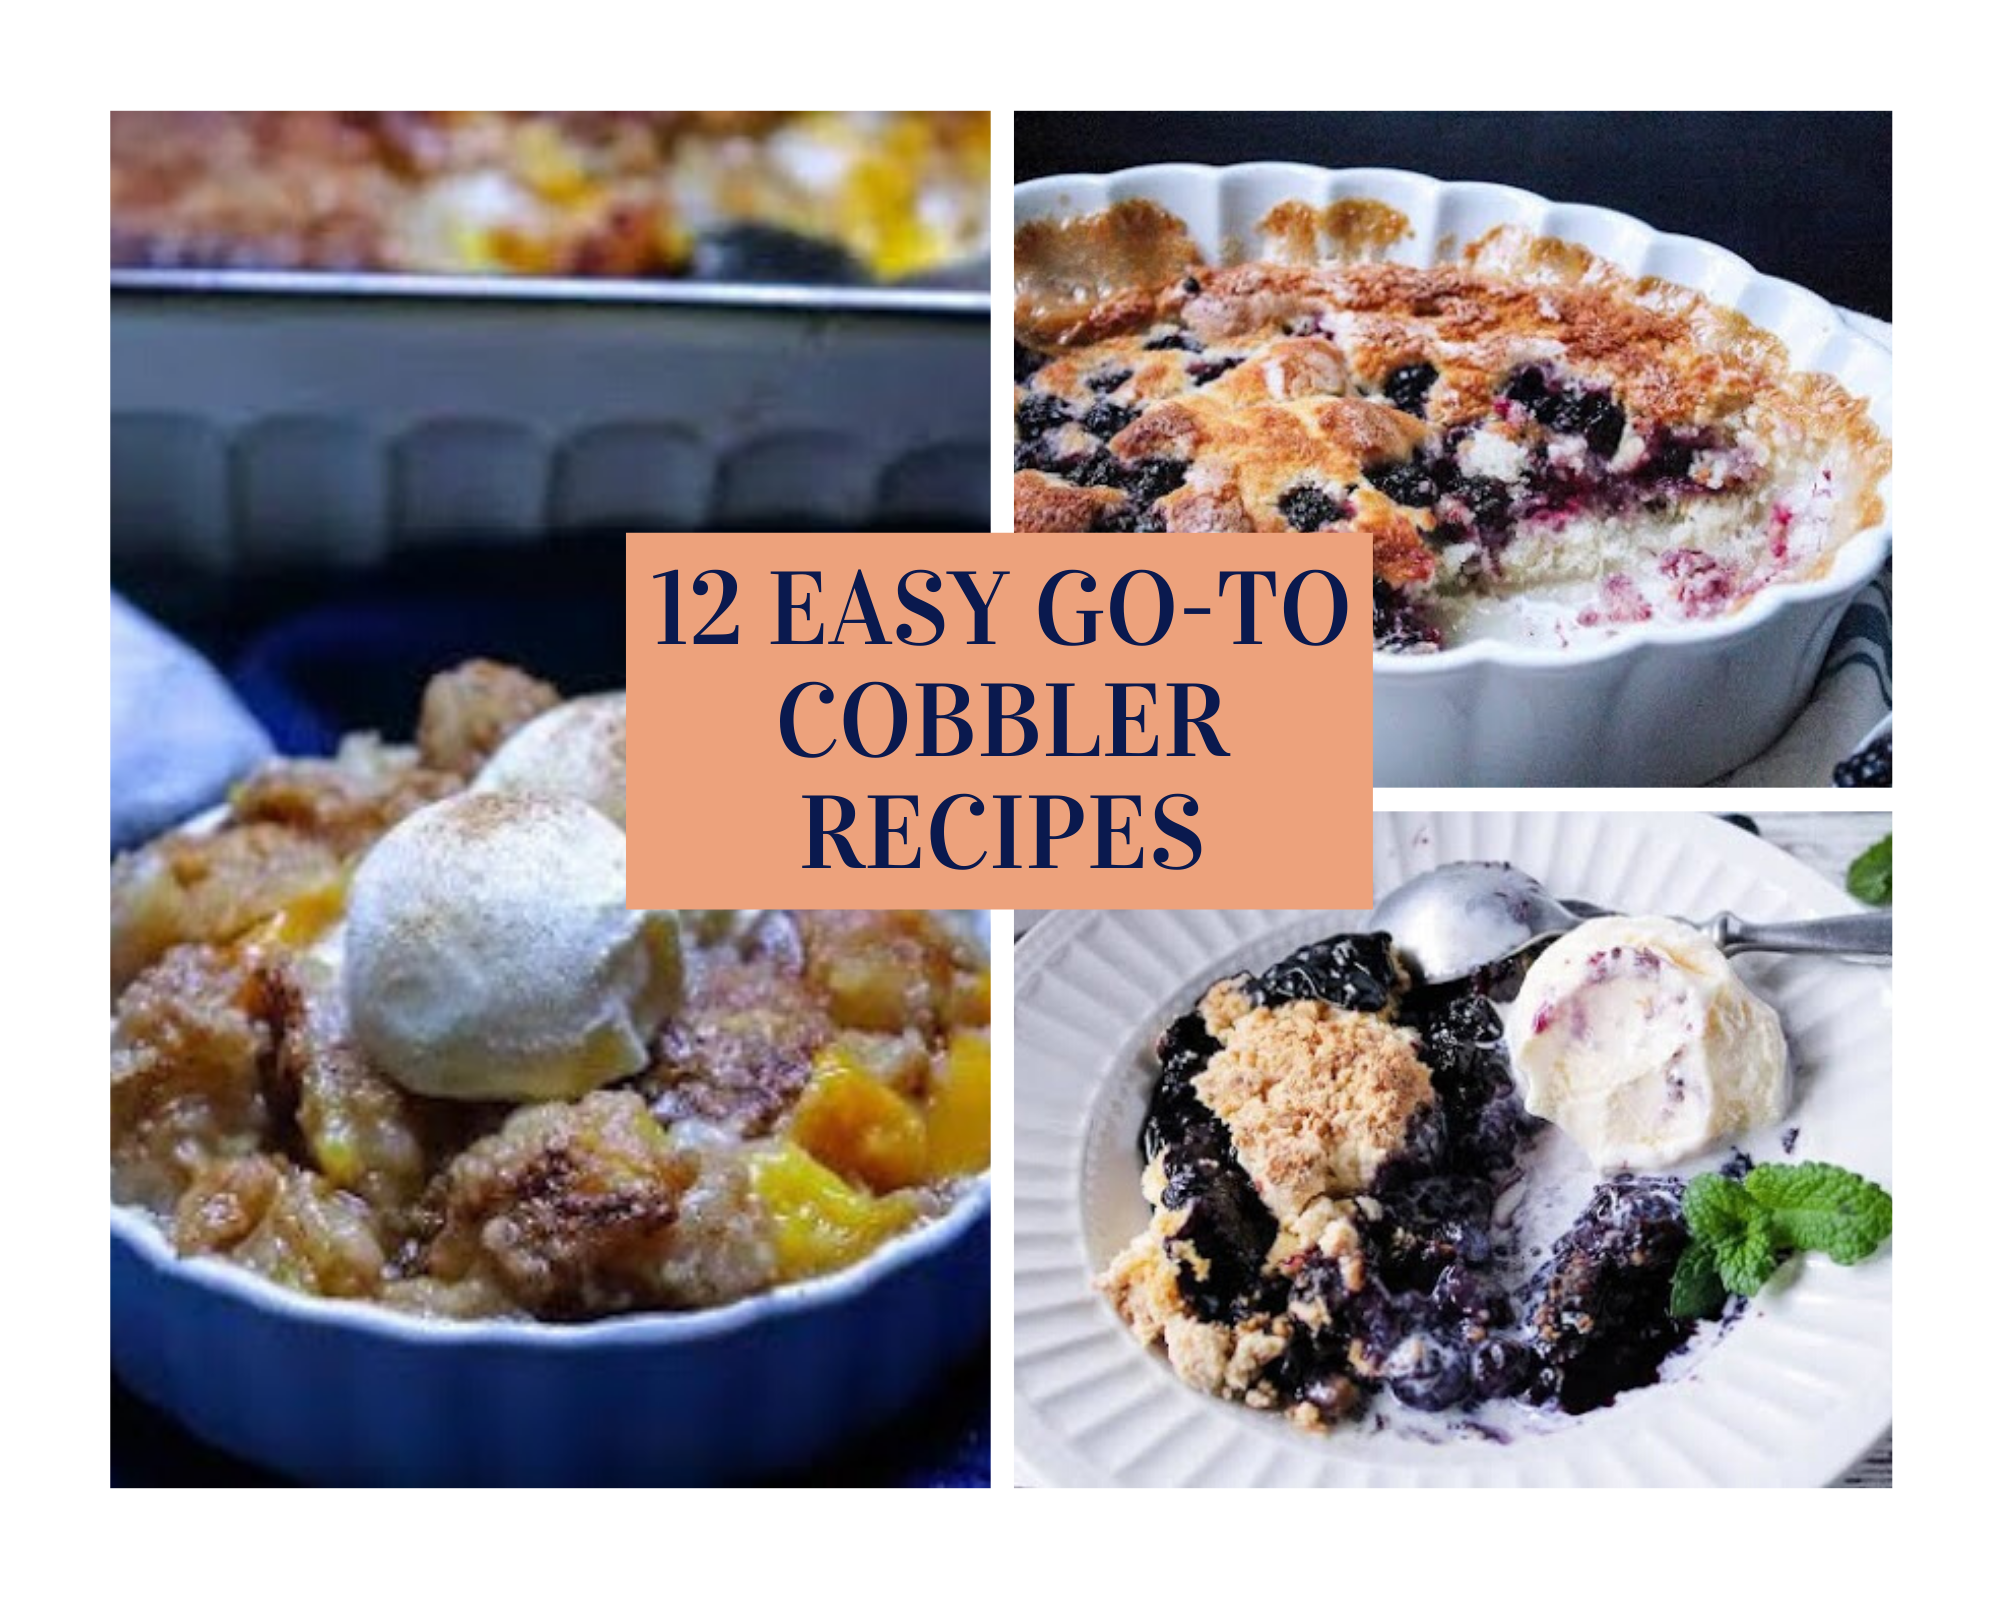 Homemade blueberry, peach and blackberry cobbler